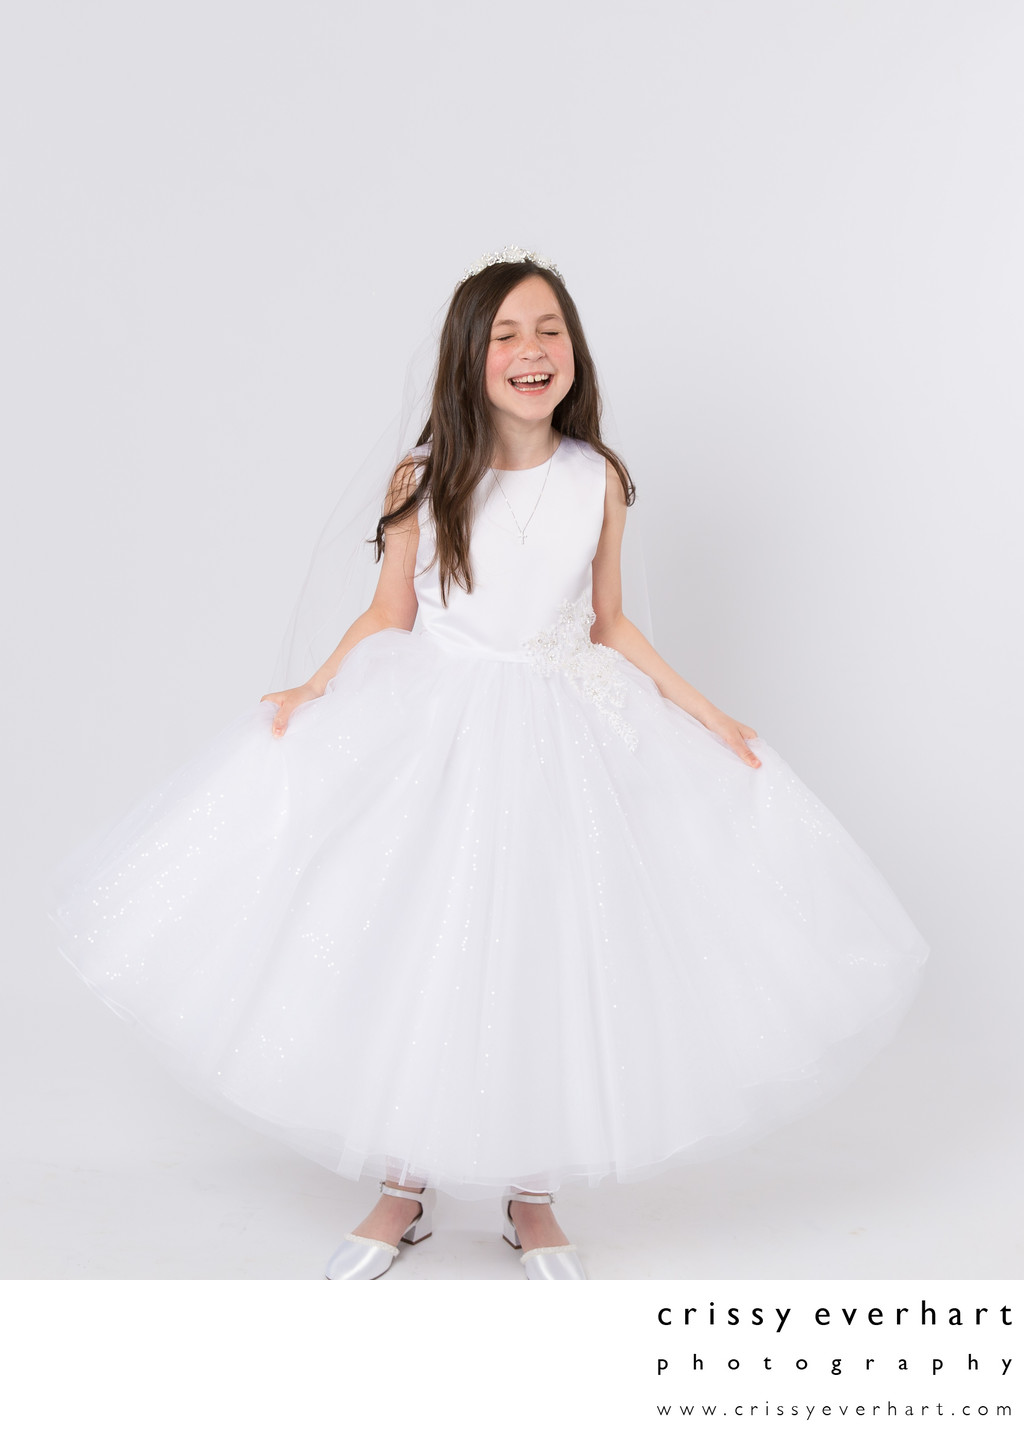 First Communion Portraits on White Backdrop